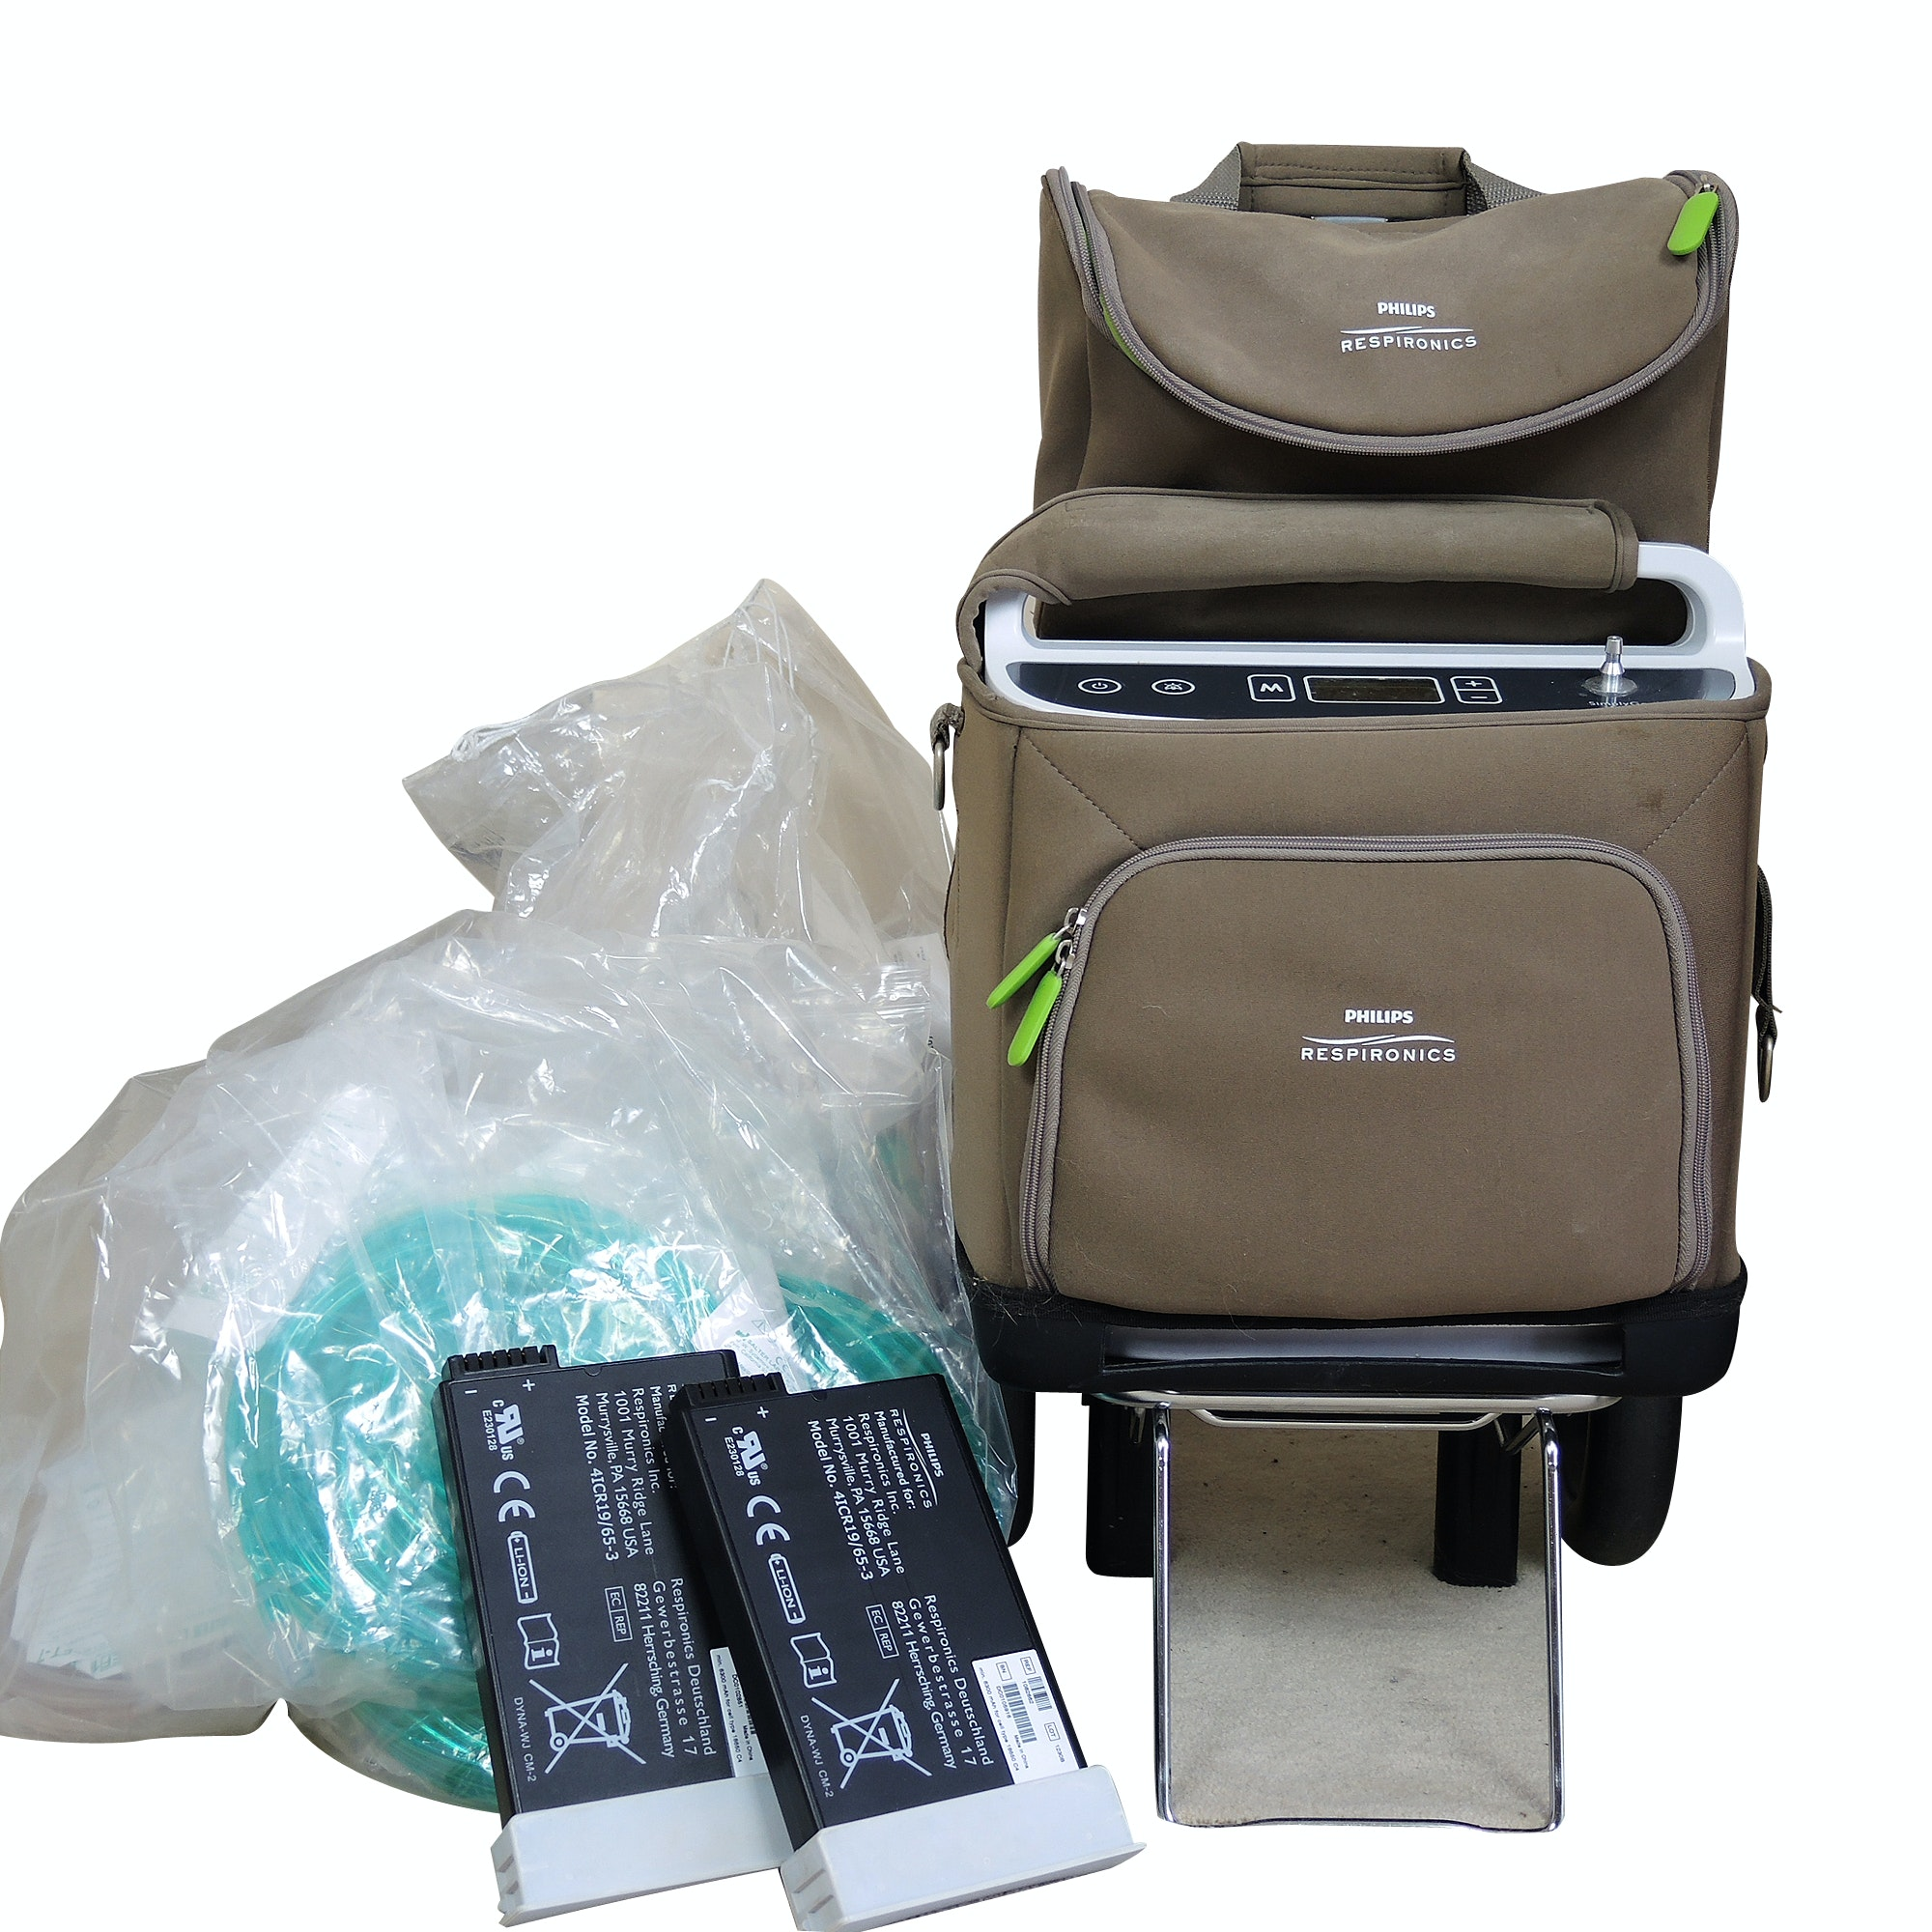 Philips Respironics Portable Oxygen Unit and Mobile Cart